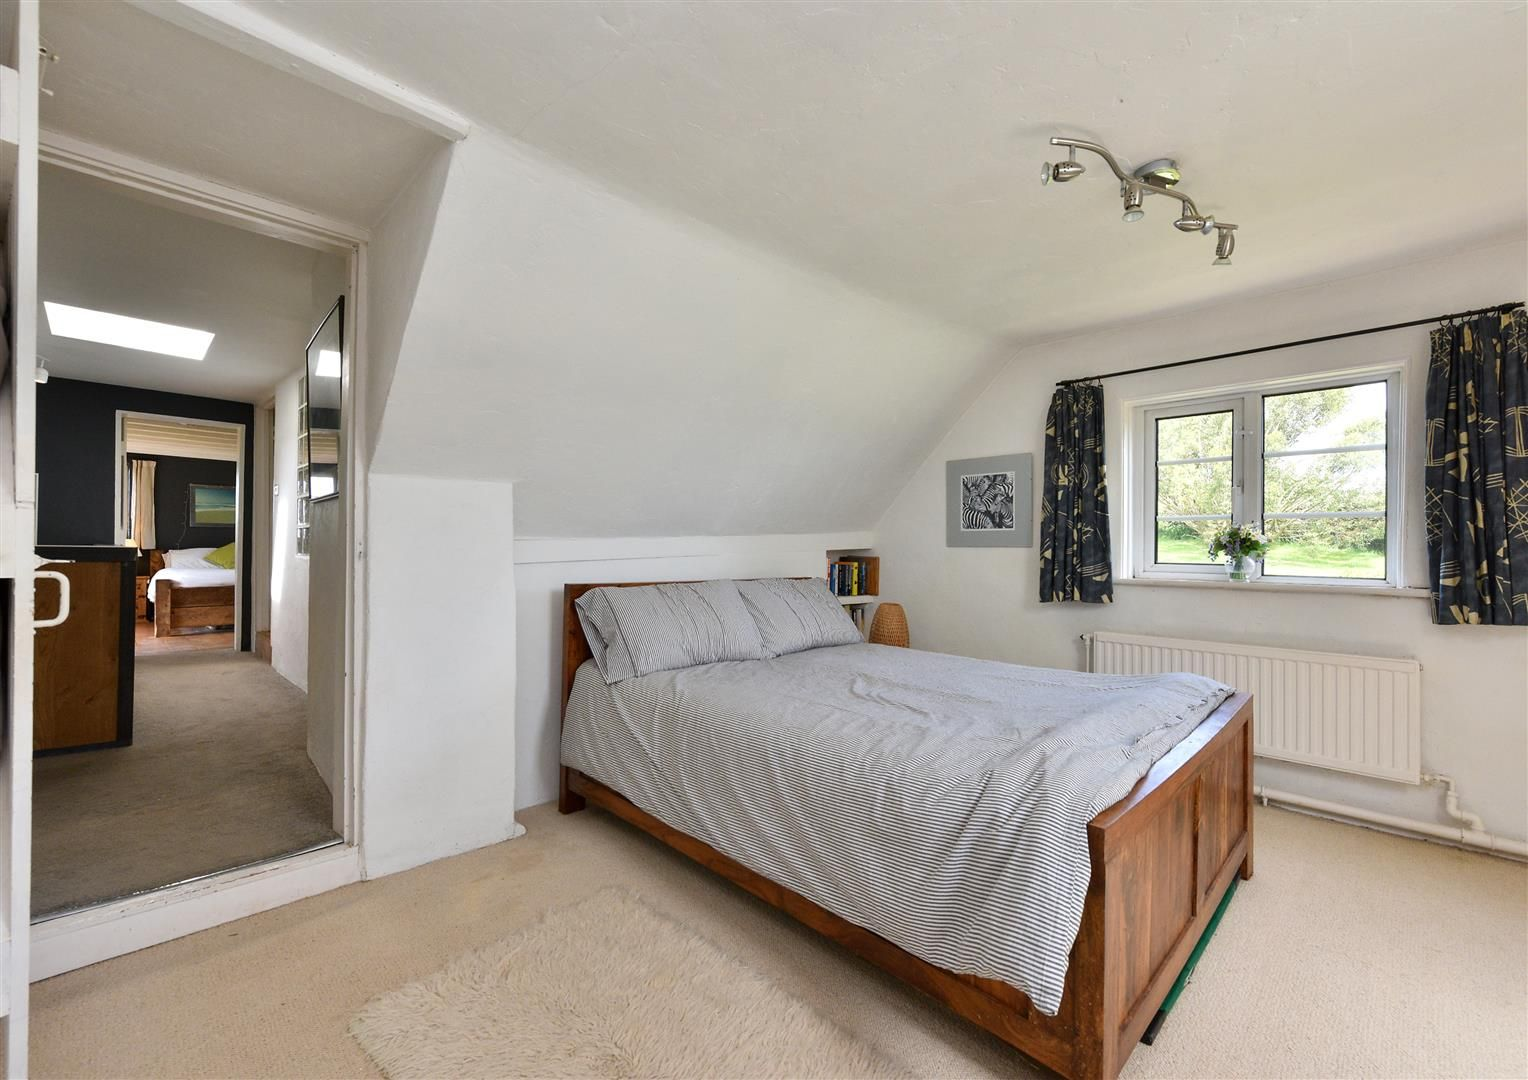 5 bed detached for sale in Clent  - Property Image 18